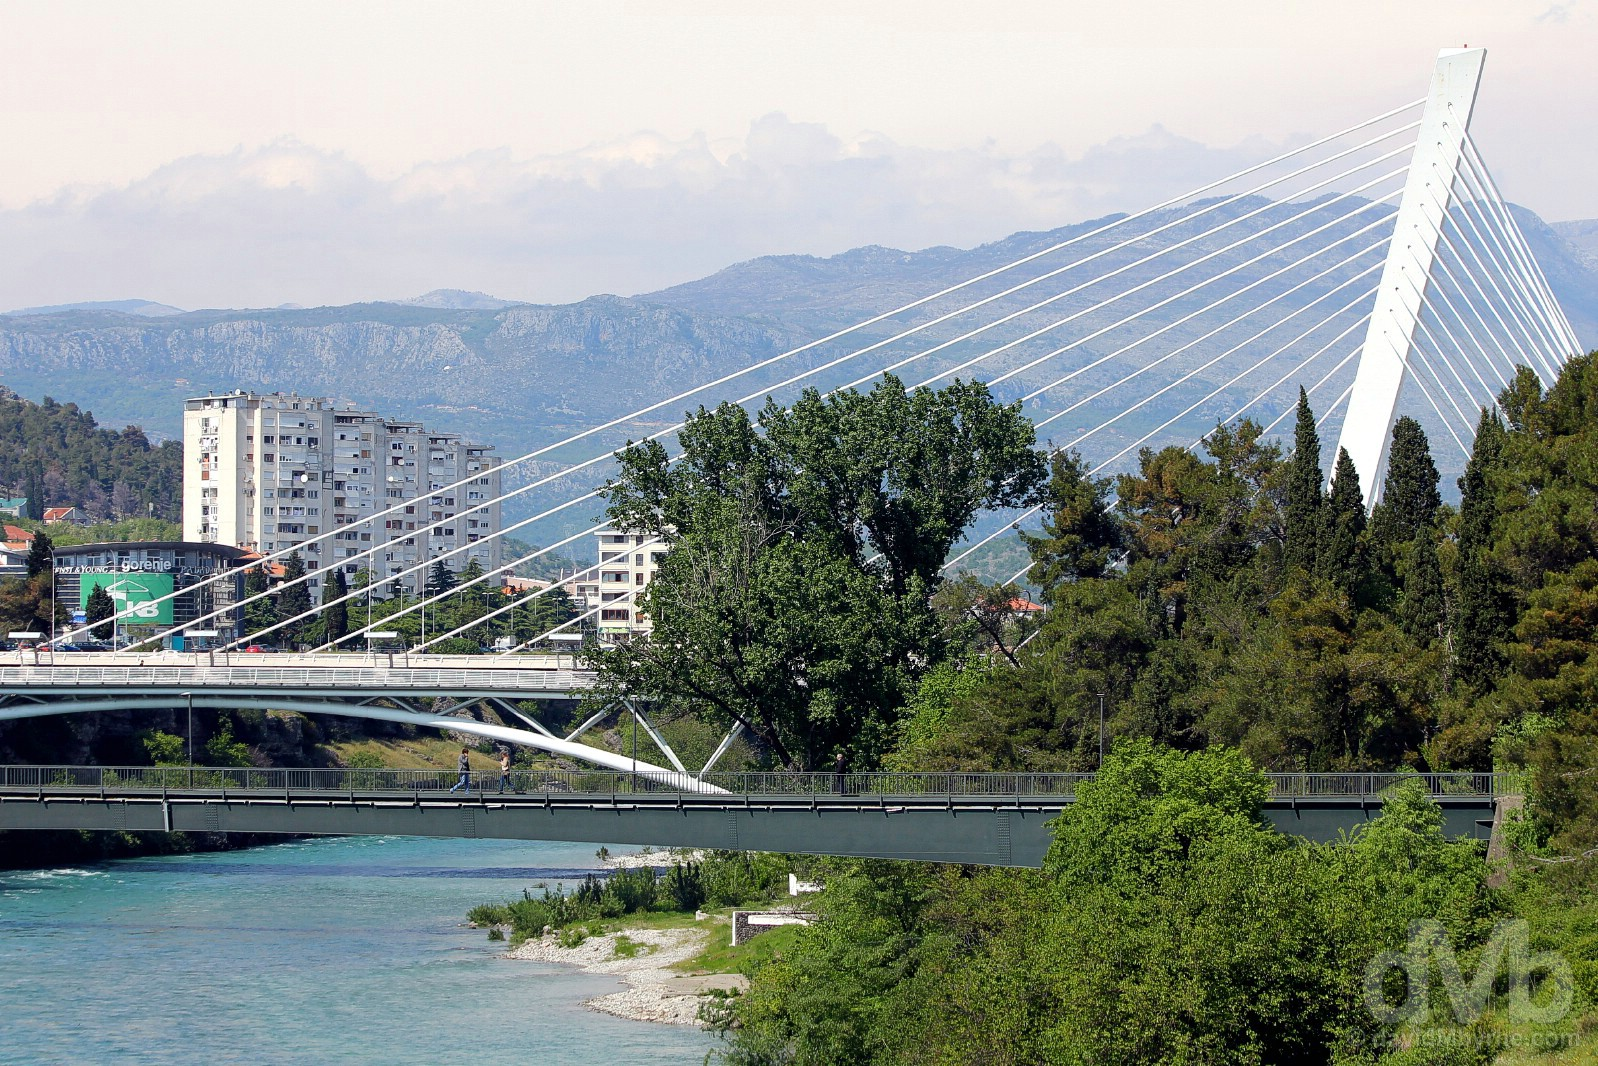 The cable-stayed Moskovski Most (Millennium Bridge) over the Moraca River in Podgorica, Montenegro. April 21, 2017.